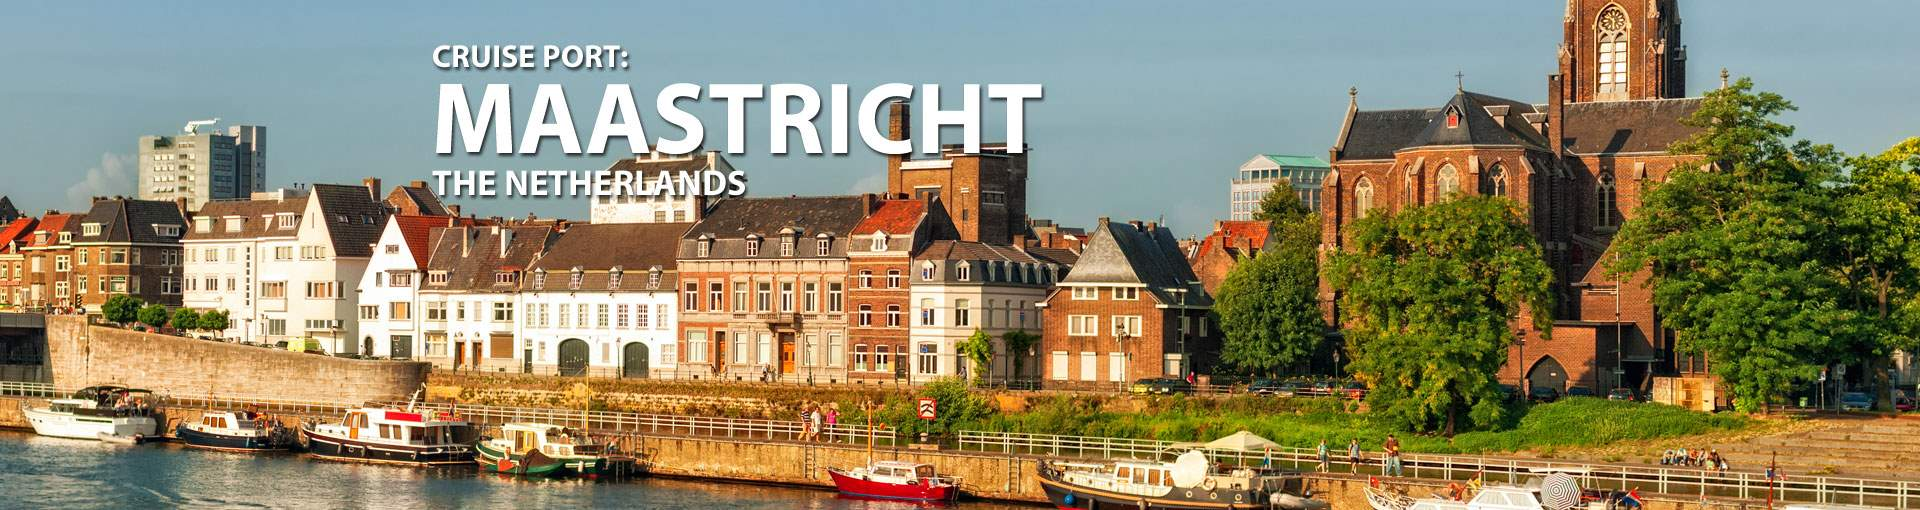 Cruises to Maastricht, The Netherlands